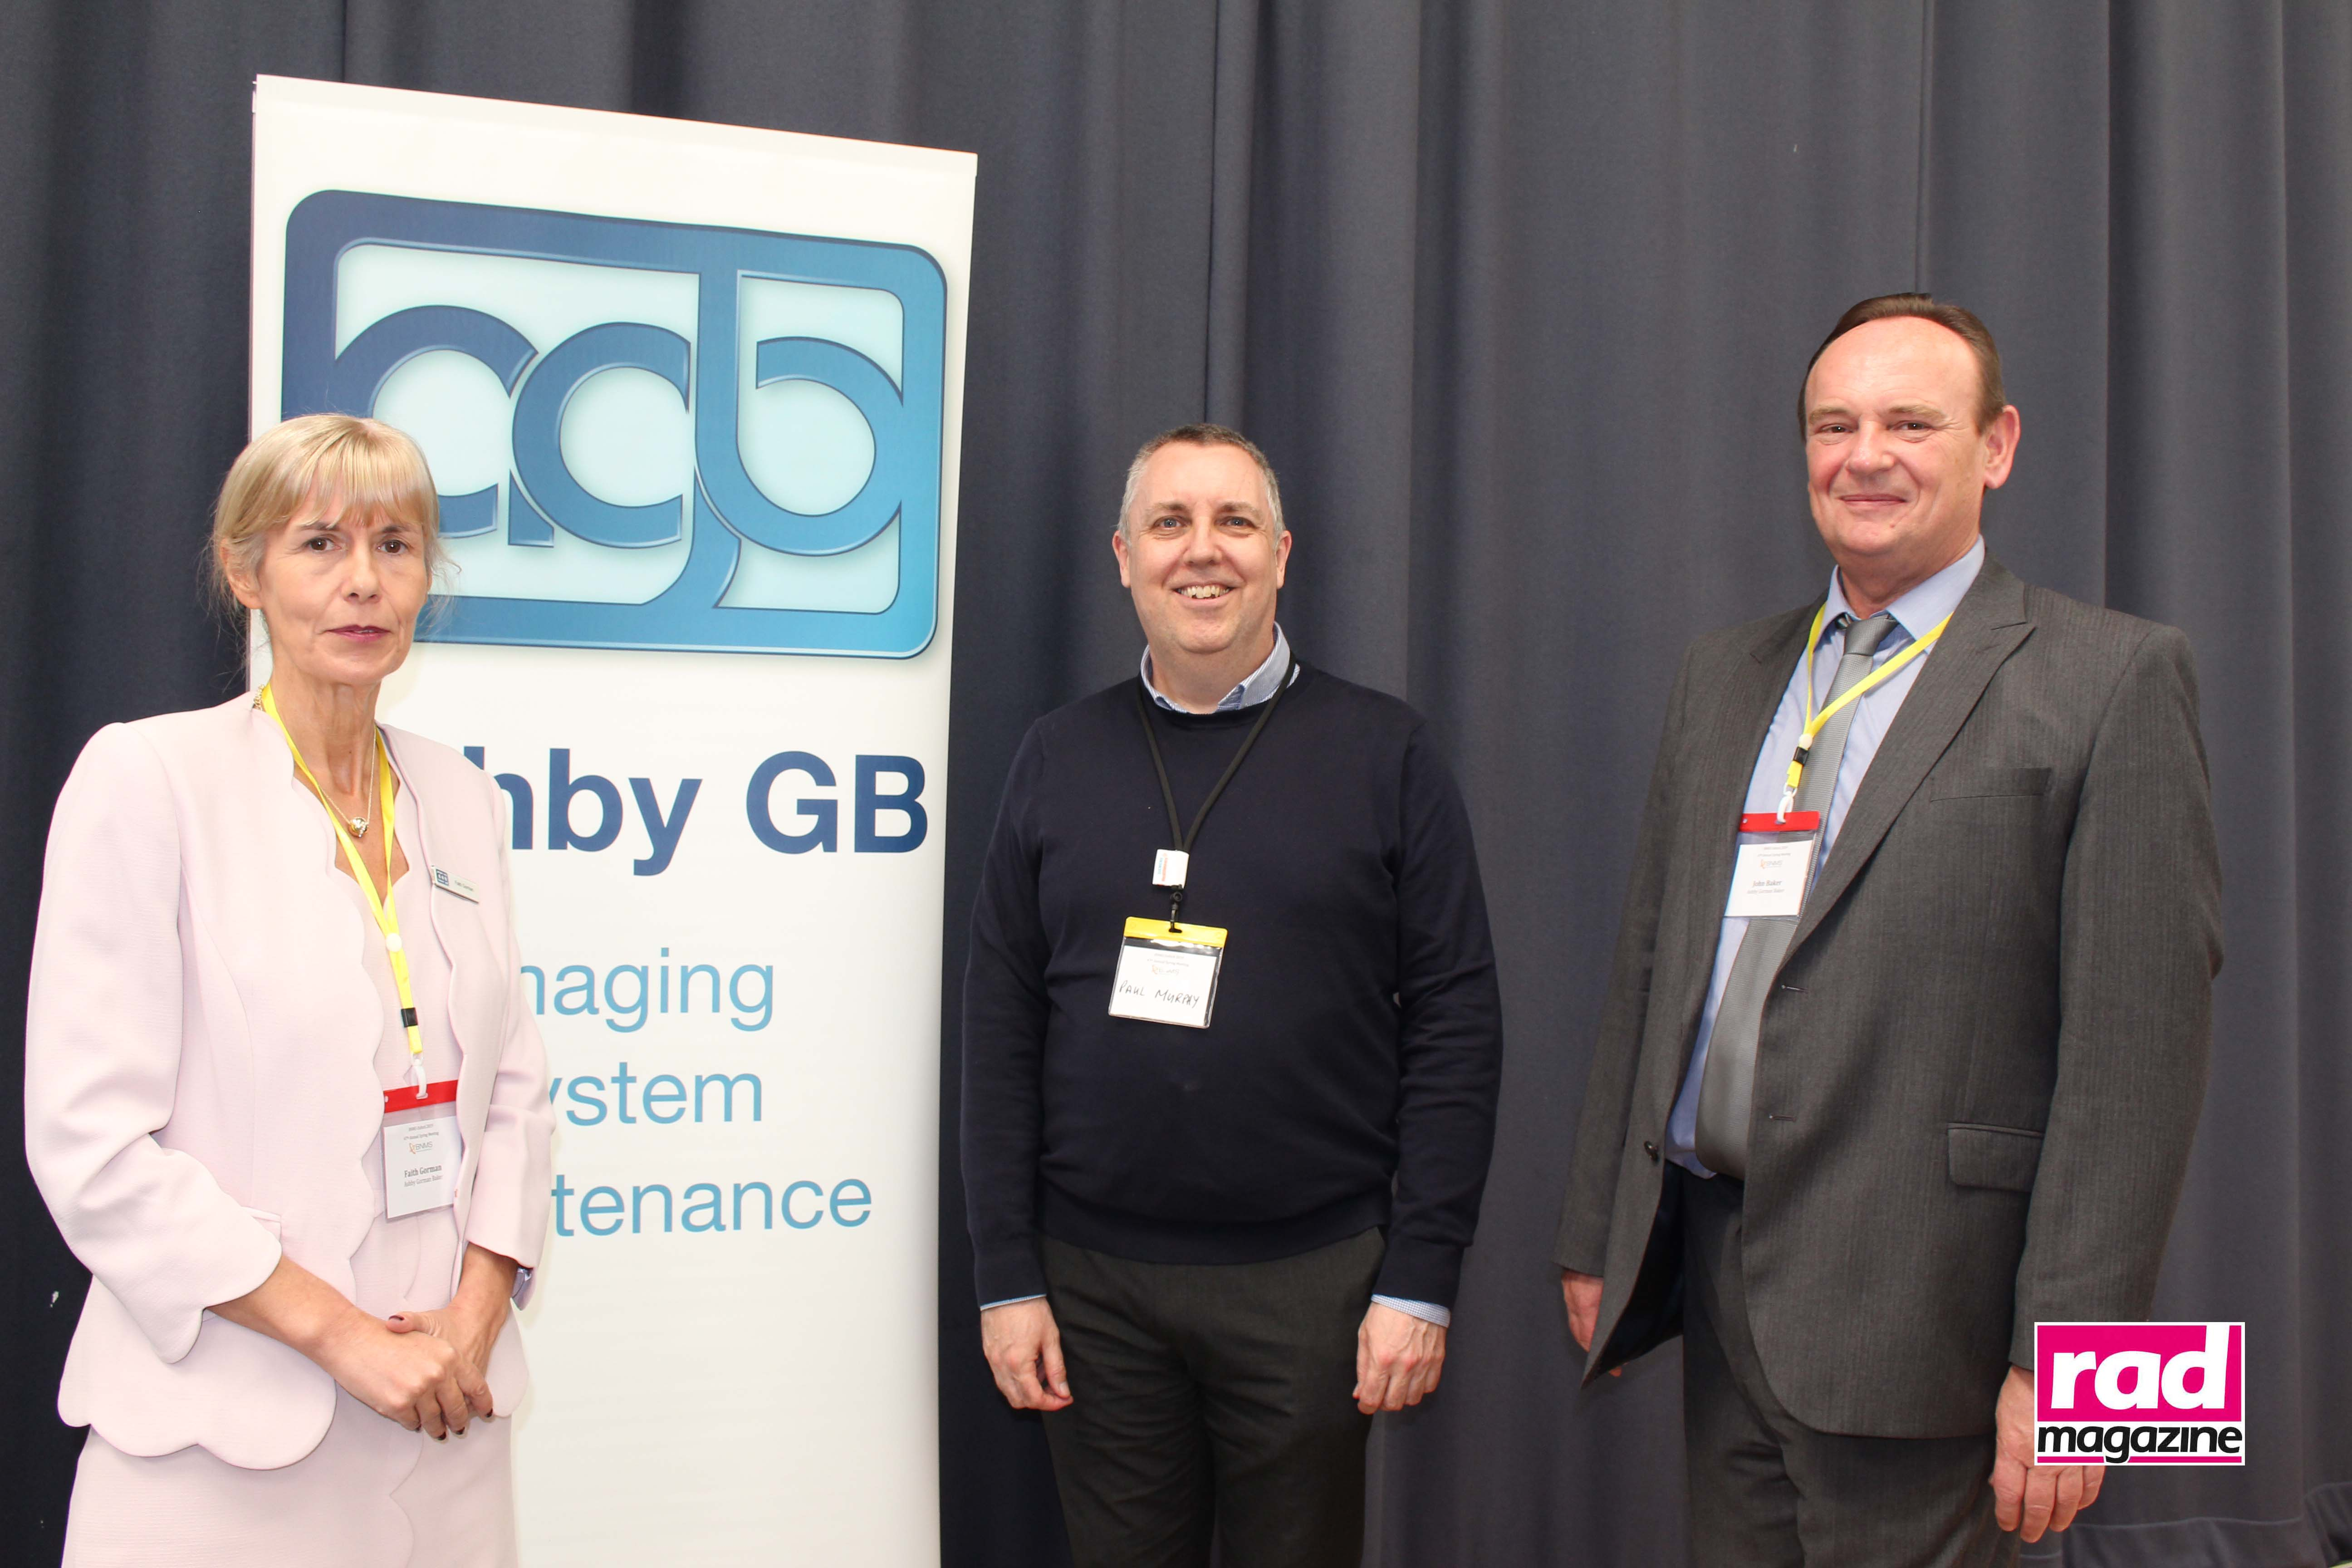 British Nuclear Medicine Society 2019 Ashby GB